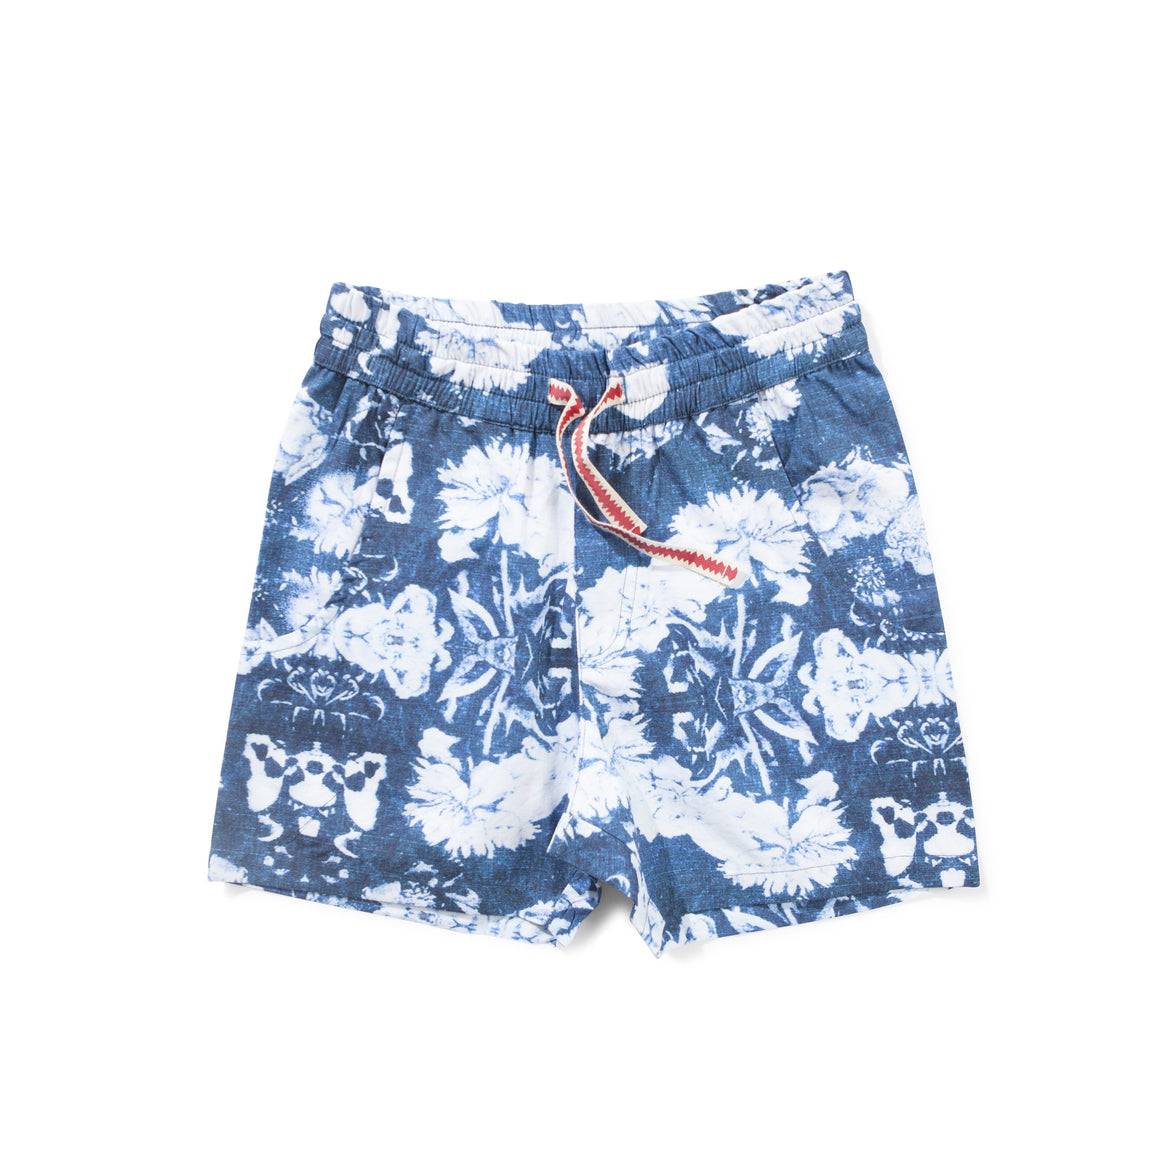 Munster Kids - Boys Navy Bleach Wash Shorts | Pants & Shorts | Bon Bon Tresor